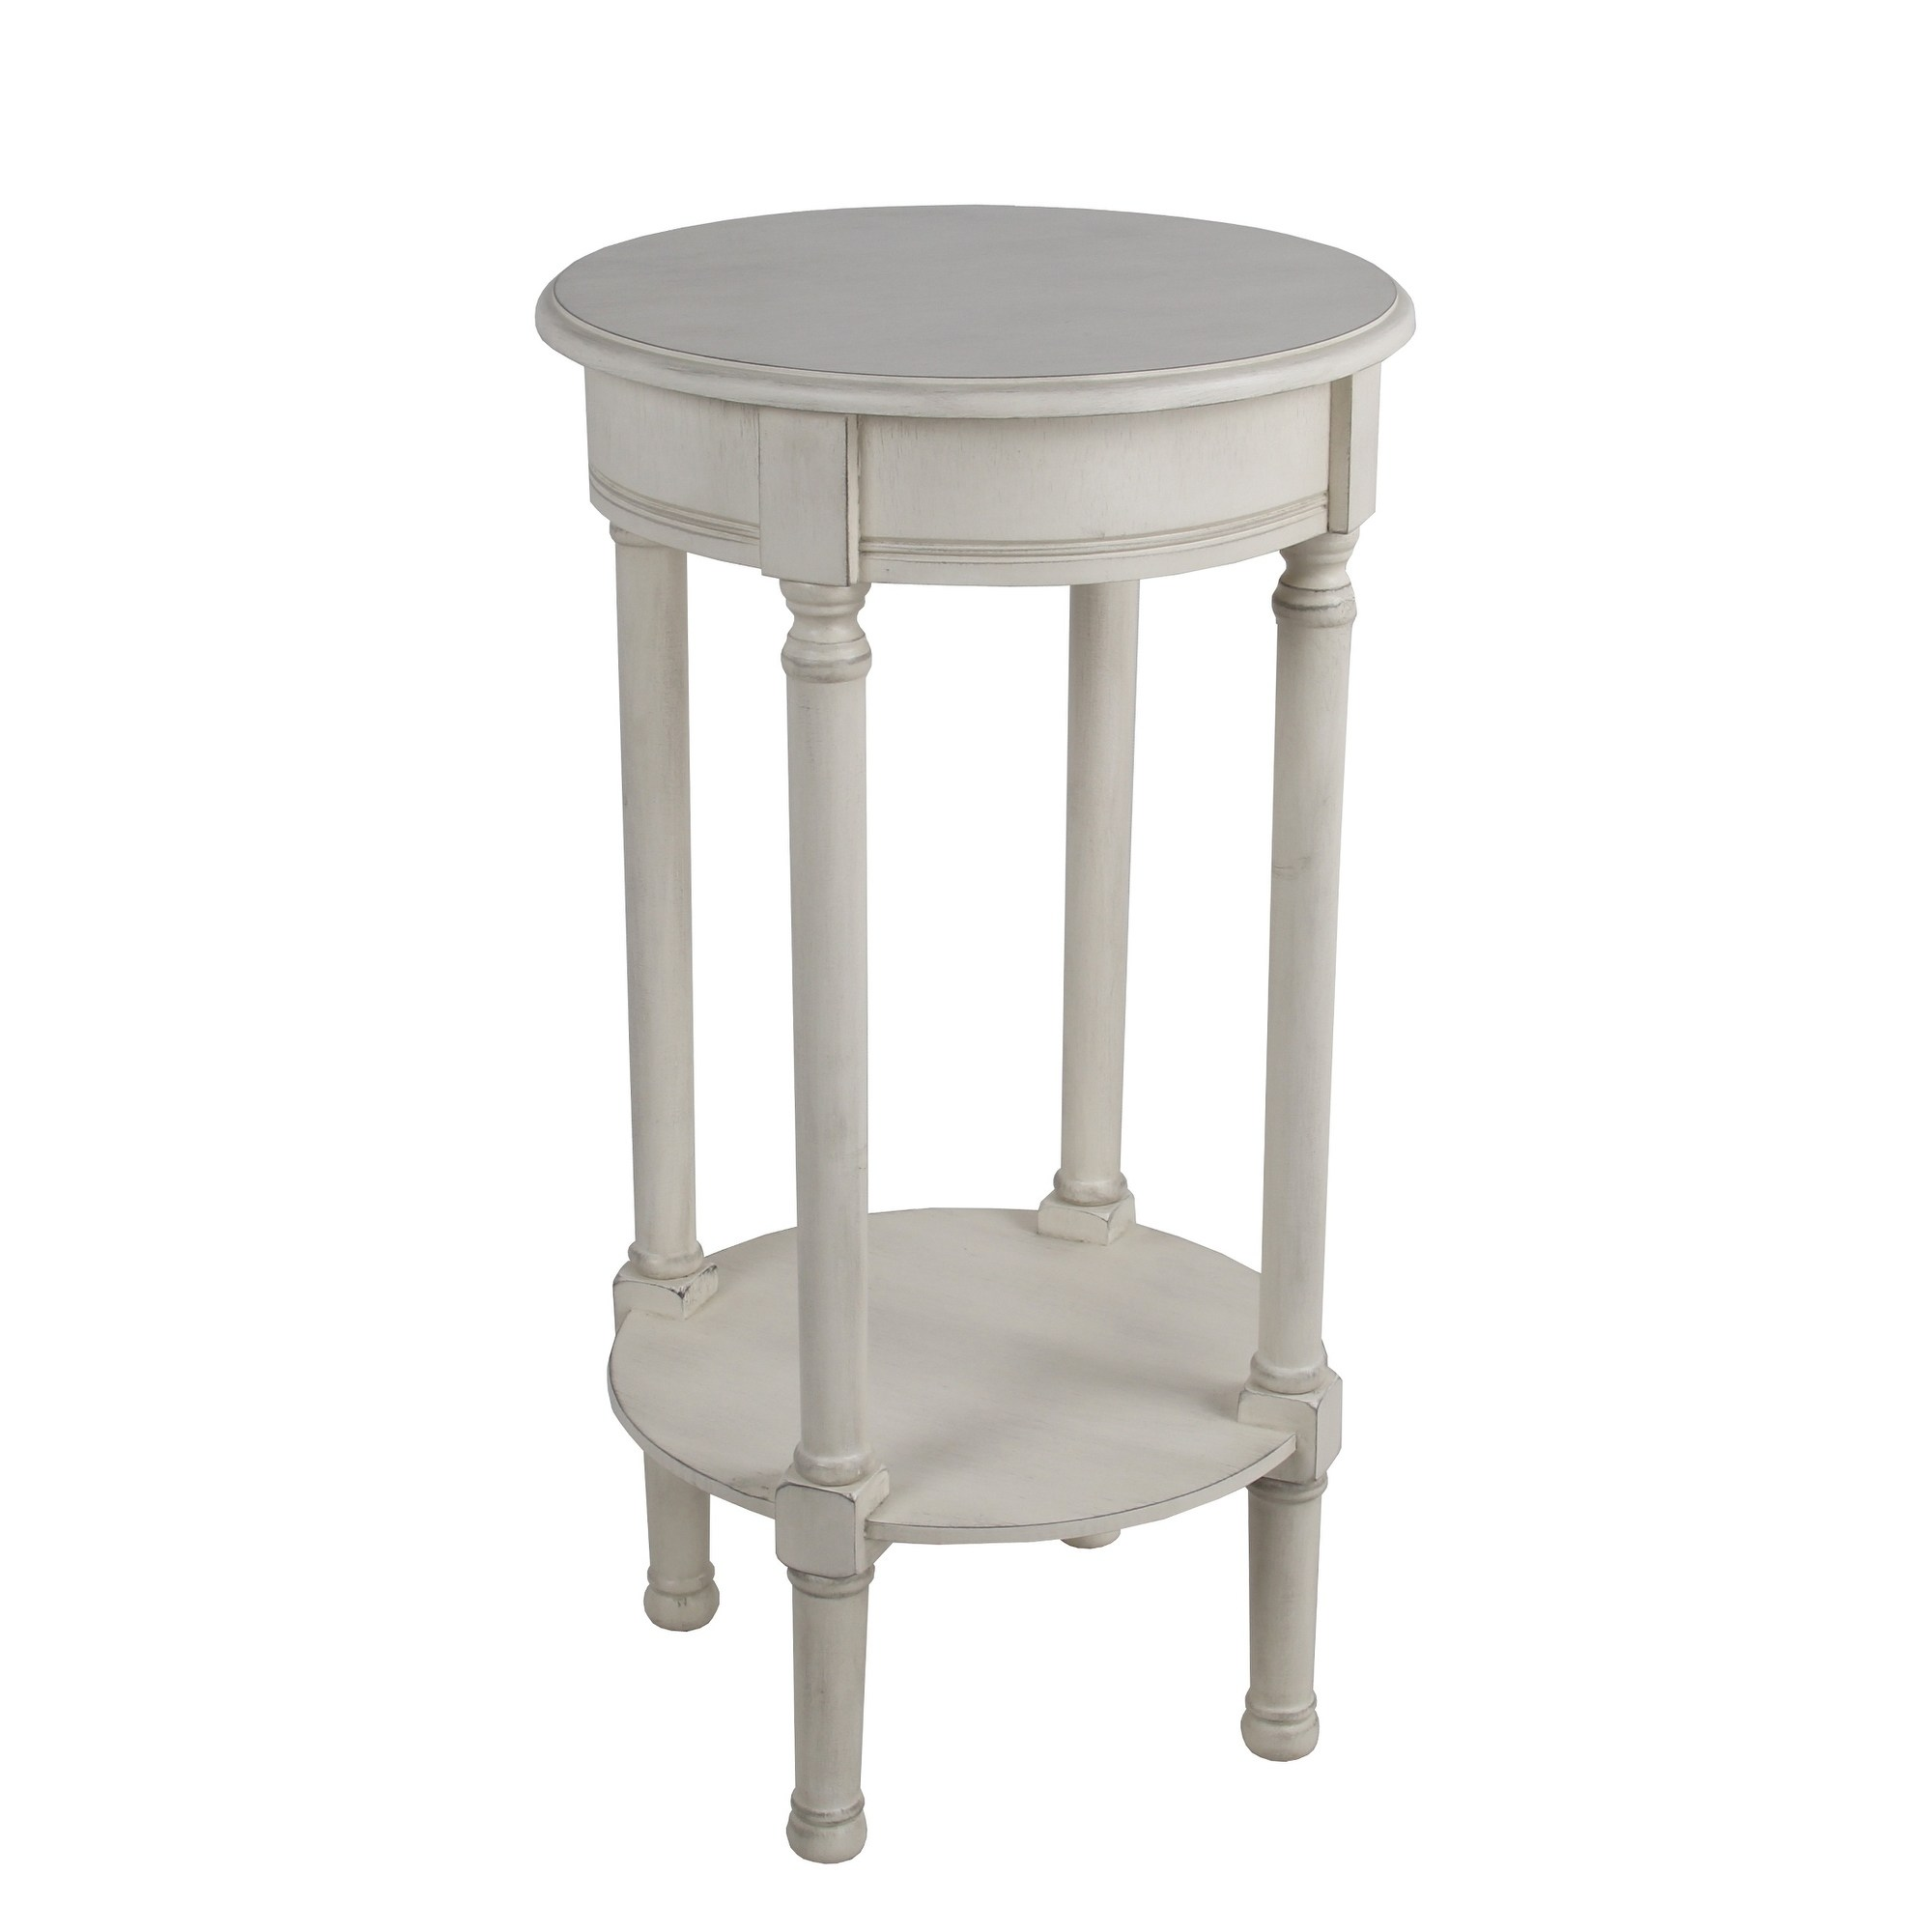 privilege antique pearl round accent table easy assemble tools required free shipping today target patio dining inches high home decorators catalog garage cabinets large umbrella